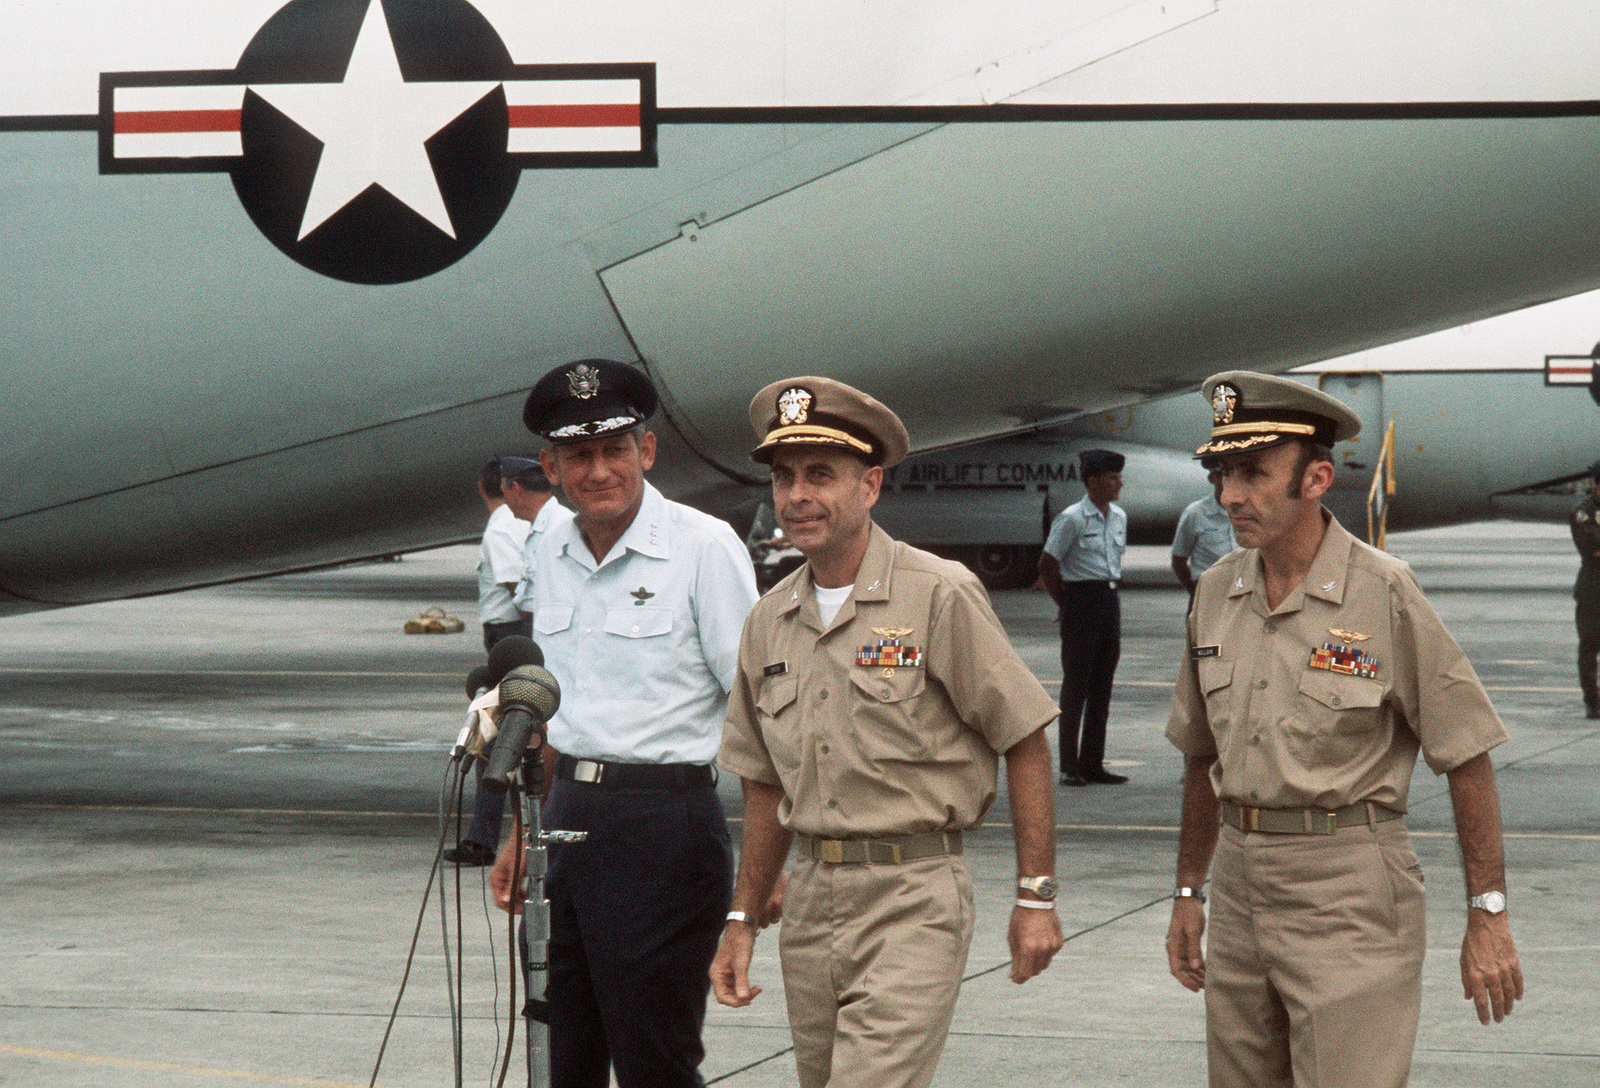 Returned POWs U.S. Navy CPT Jeremiah Andrew Denton (on left), (Captured 18 Jul 65) and Navy CPT James Alfred Mulligan, (Captured 20 Mar 66) along with 13th Air Force Commander, LGEN William G. Moore approach the microphones on the flight line for a farewell statement prior to board the C-141 Starlifter for the trip from Clark AB to sthe states. Both Denton and Mulligan were released by the North Vietnamese in Hanoi on 12 Feb 73 in Hanoi